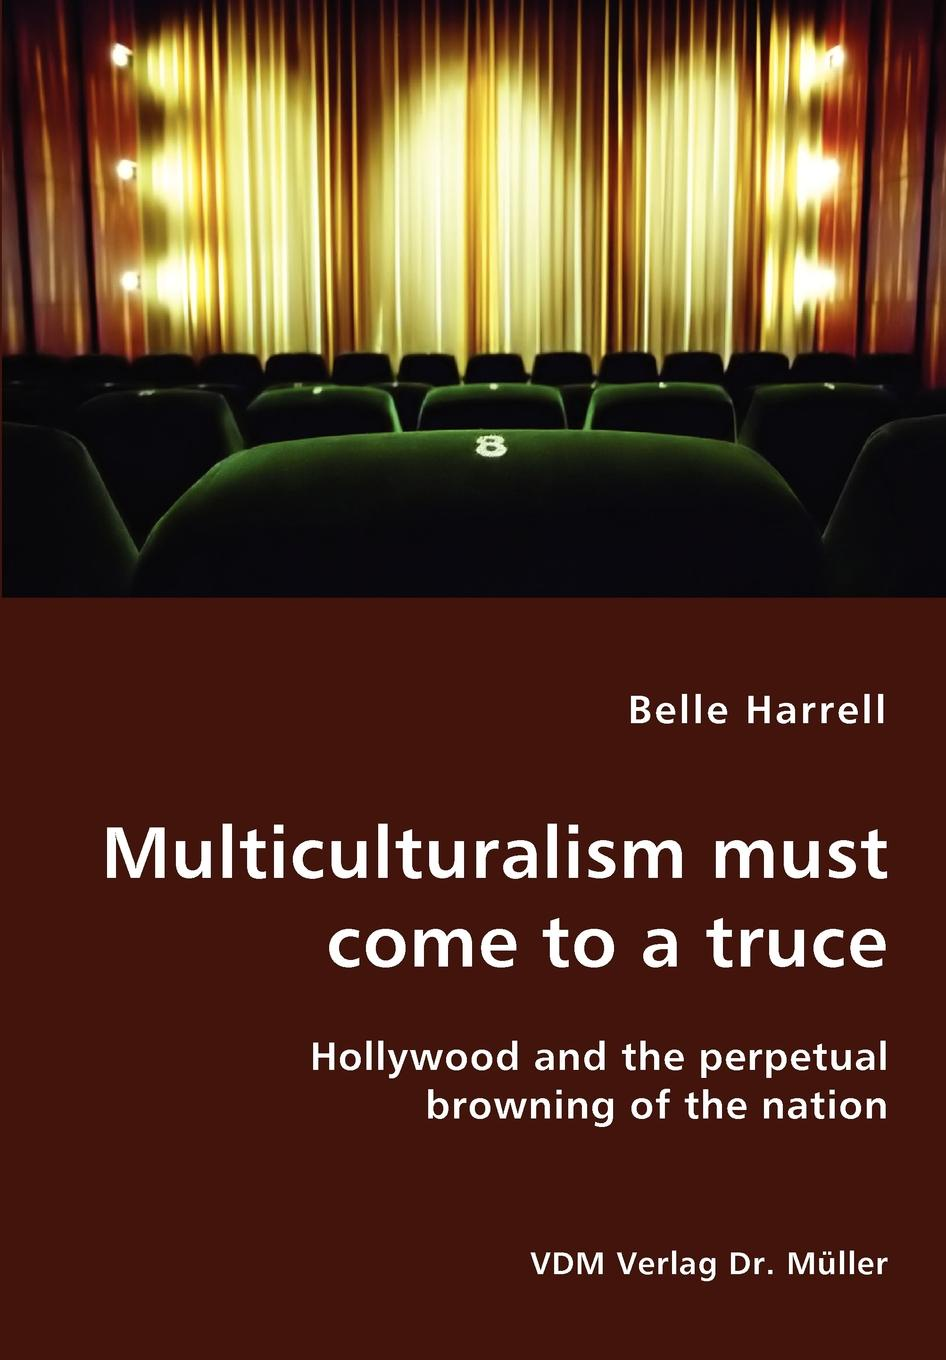 Belle Harrell Multiculturalism must come to a truce- Hollywood and the perpetual browning of the nation belle harrell multiculturalism must come to a truce hollywood and the perpetual browning of the nation